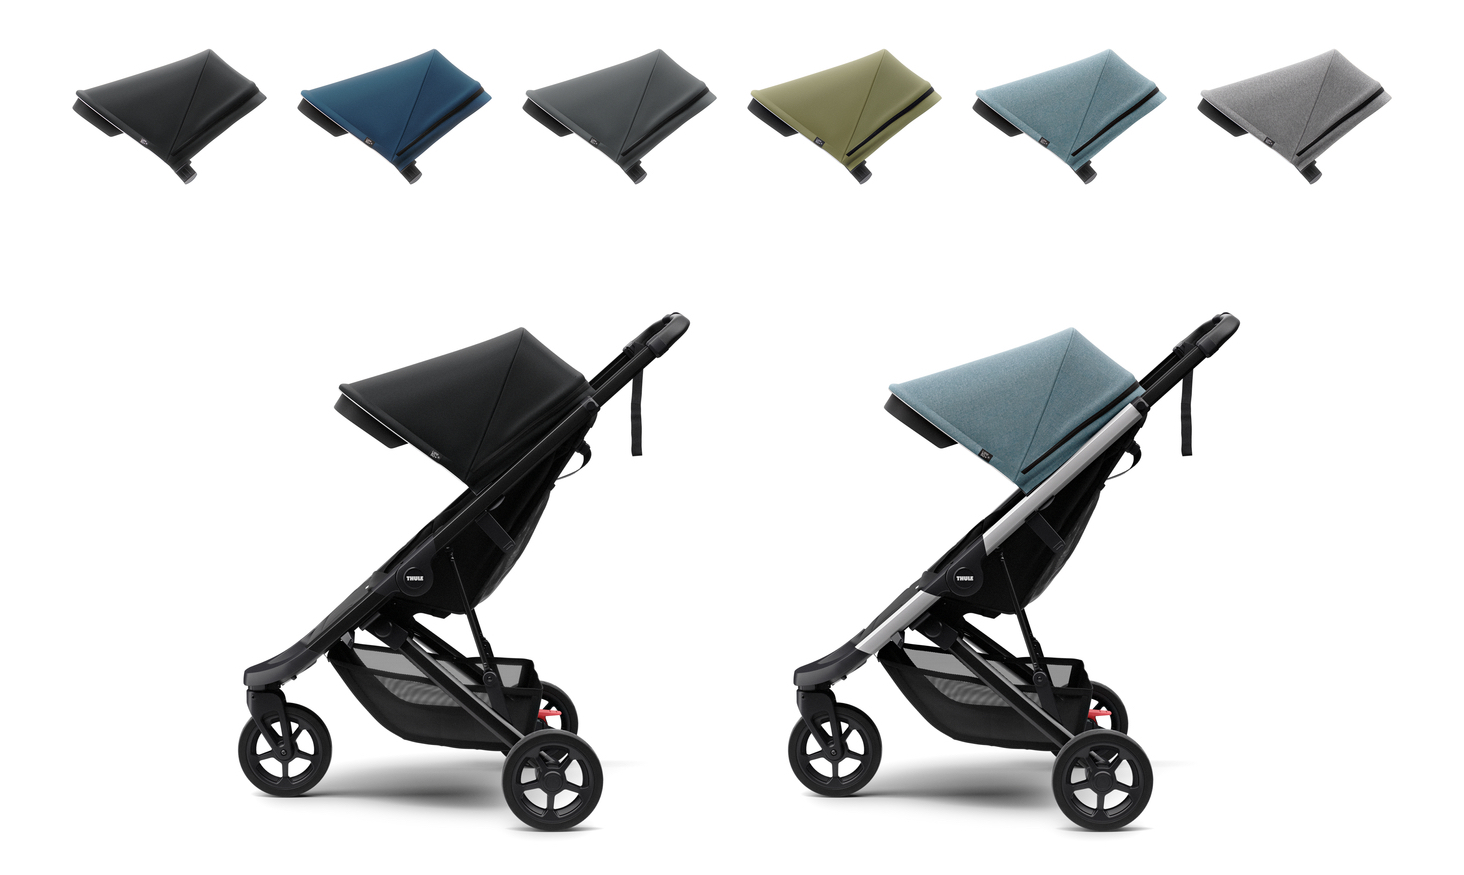 Small-Thule_Spring_Canopy_Lineup_SIDEfNIhnaadx3lV9